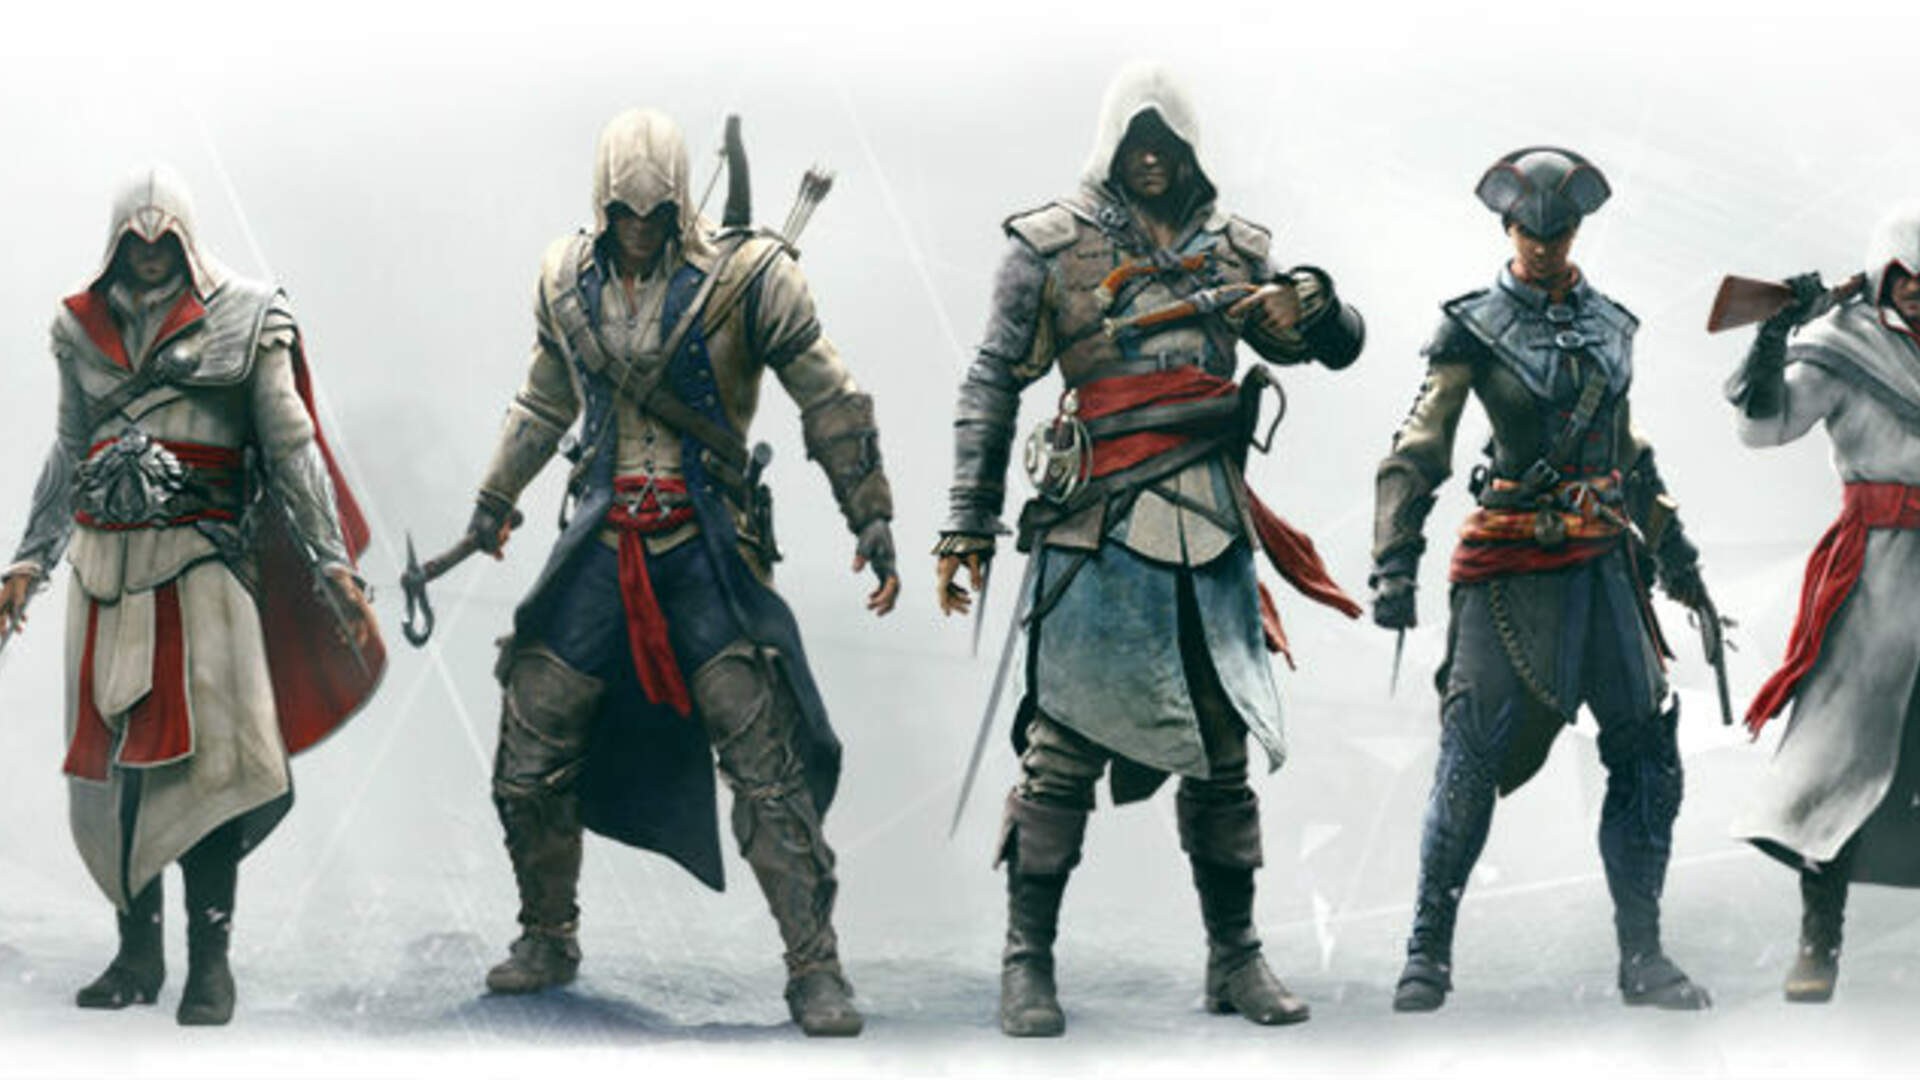 Assassin's Creed IV Director Wants Series to Go to Egypt